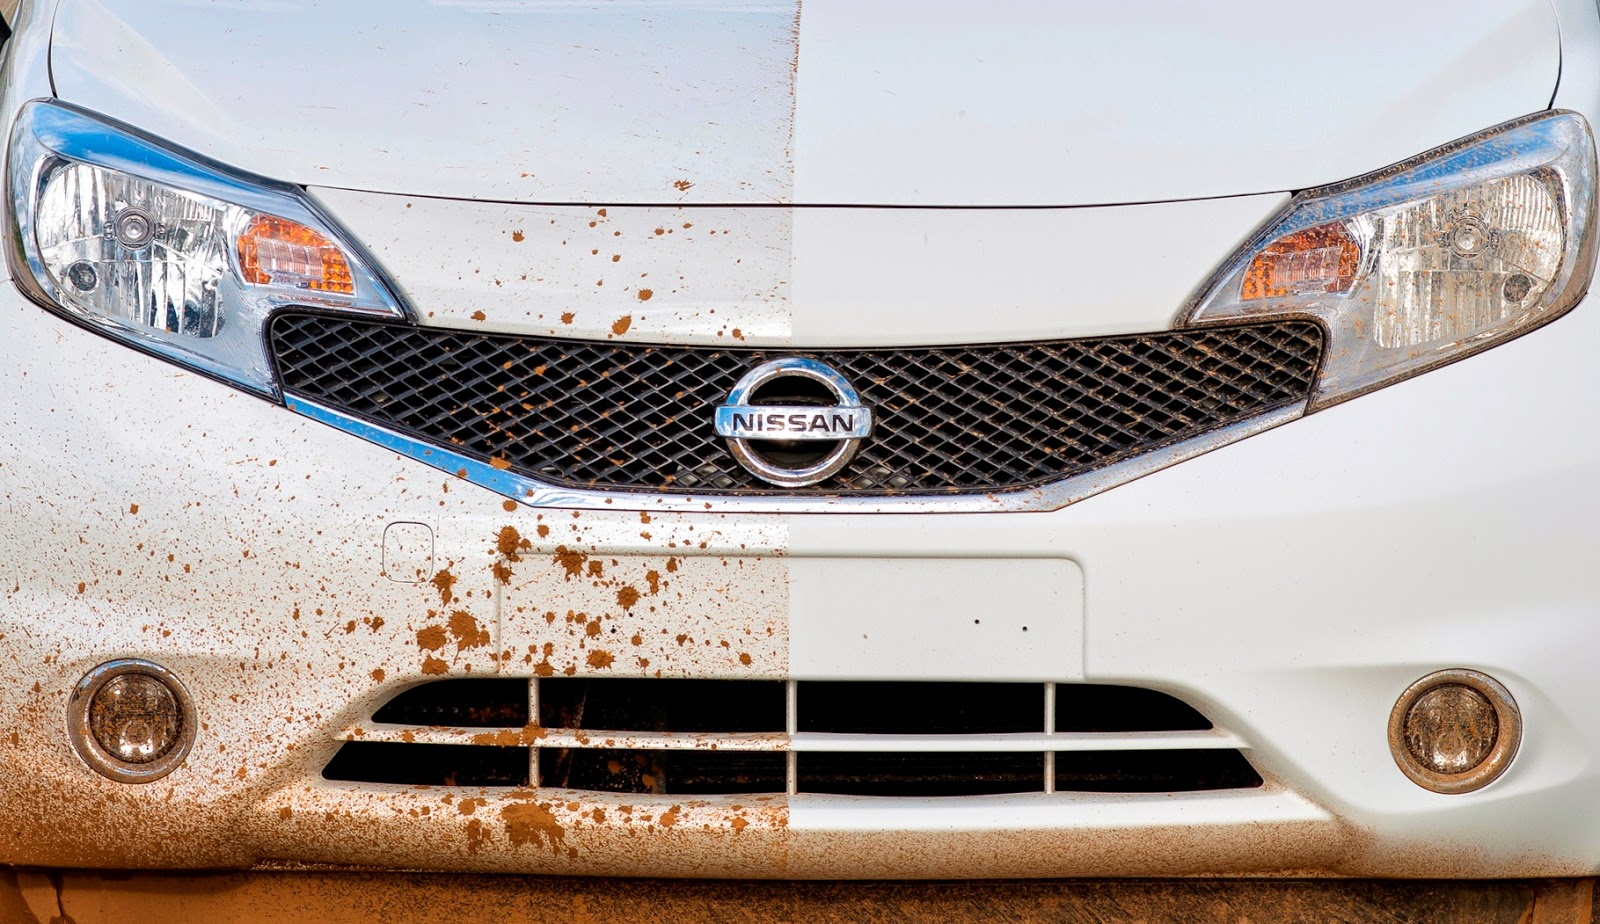 Nissan has invented a self cleaning hydrophobic paint car ~ Tracktec